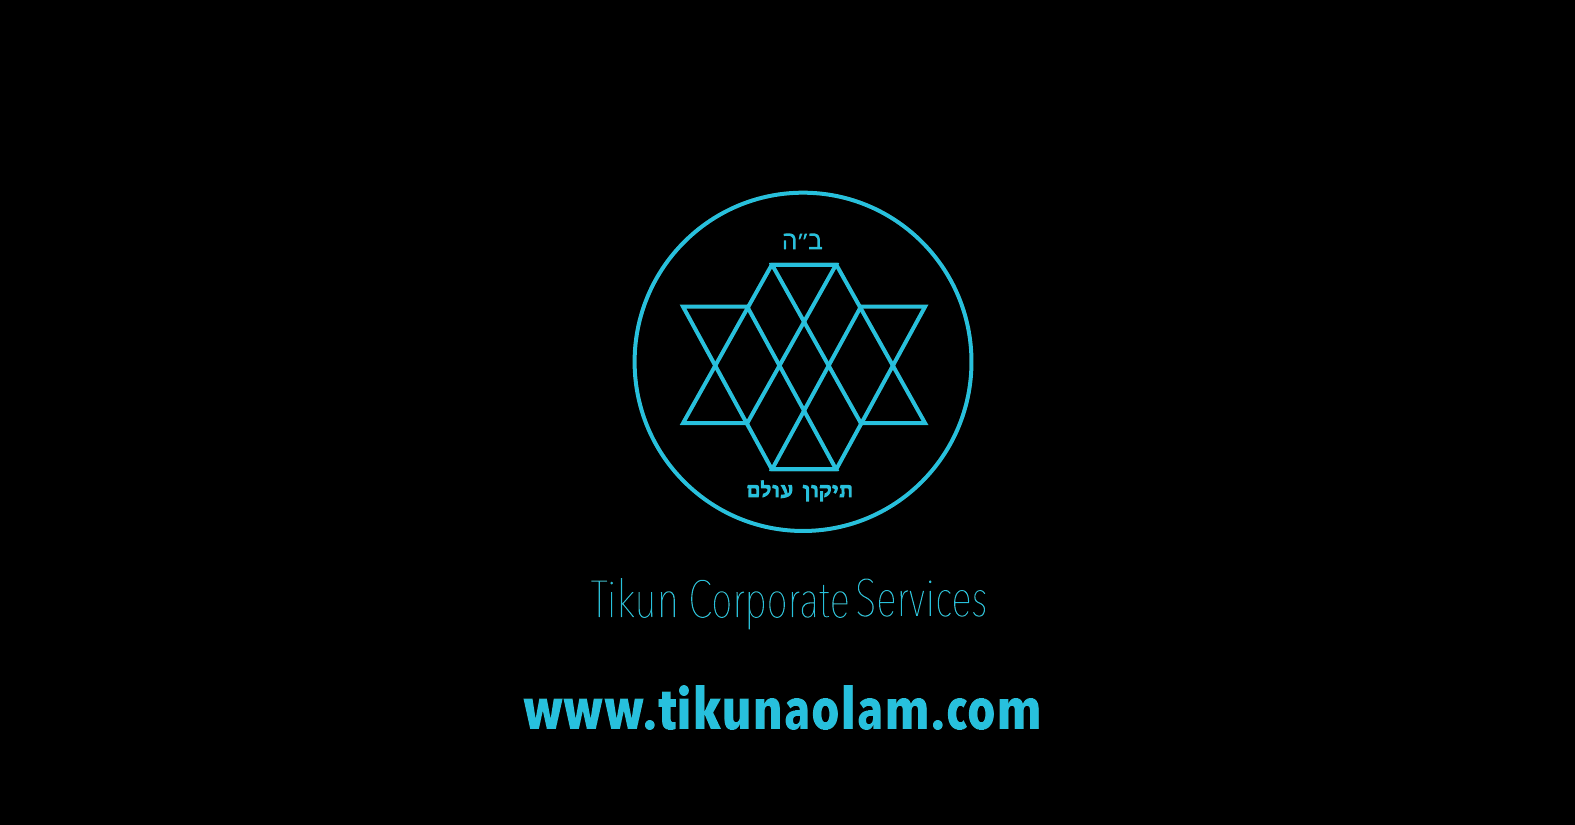 TIKUN CORPORATE SERVICES